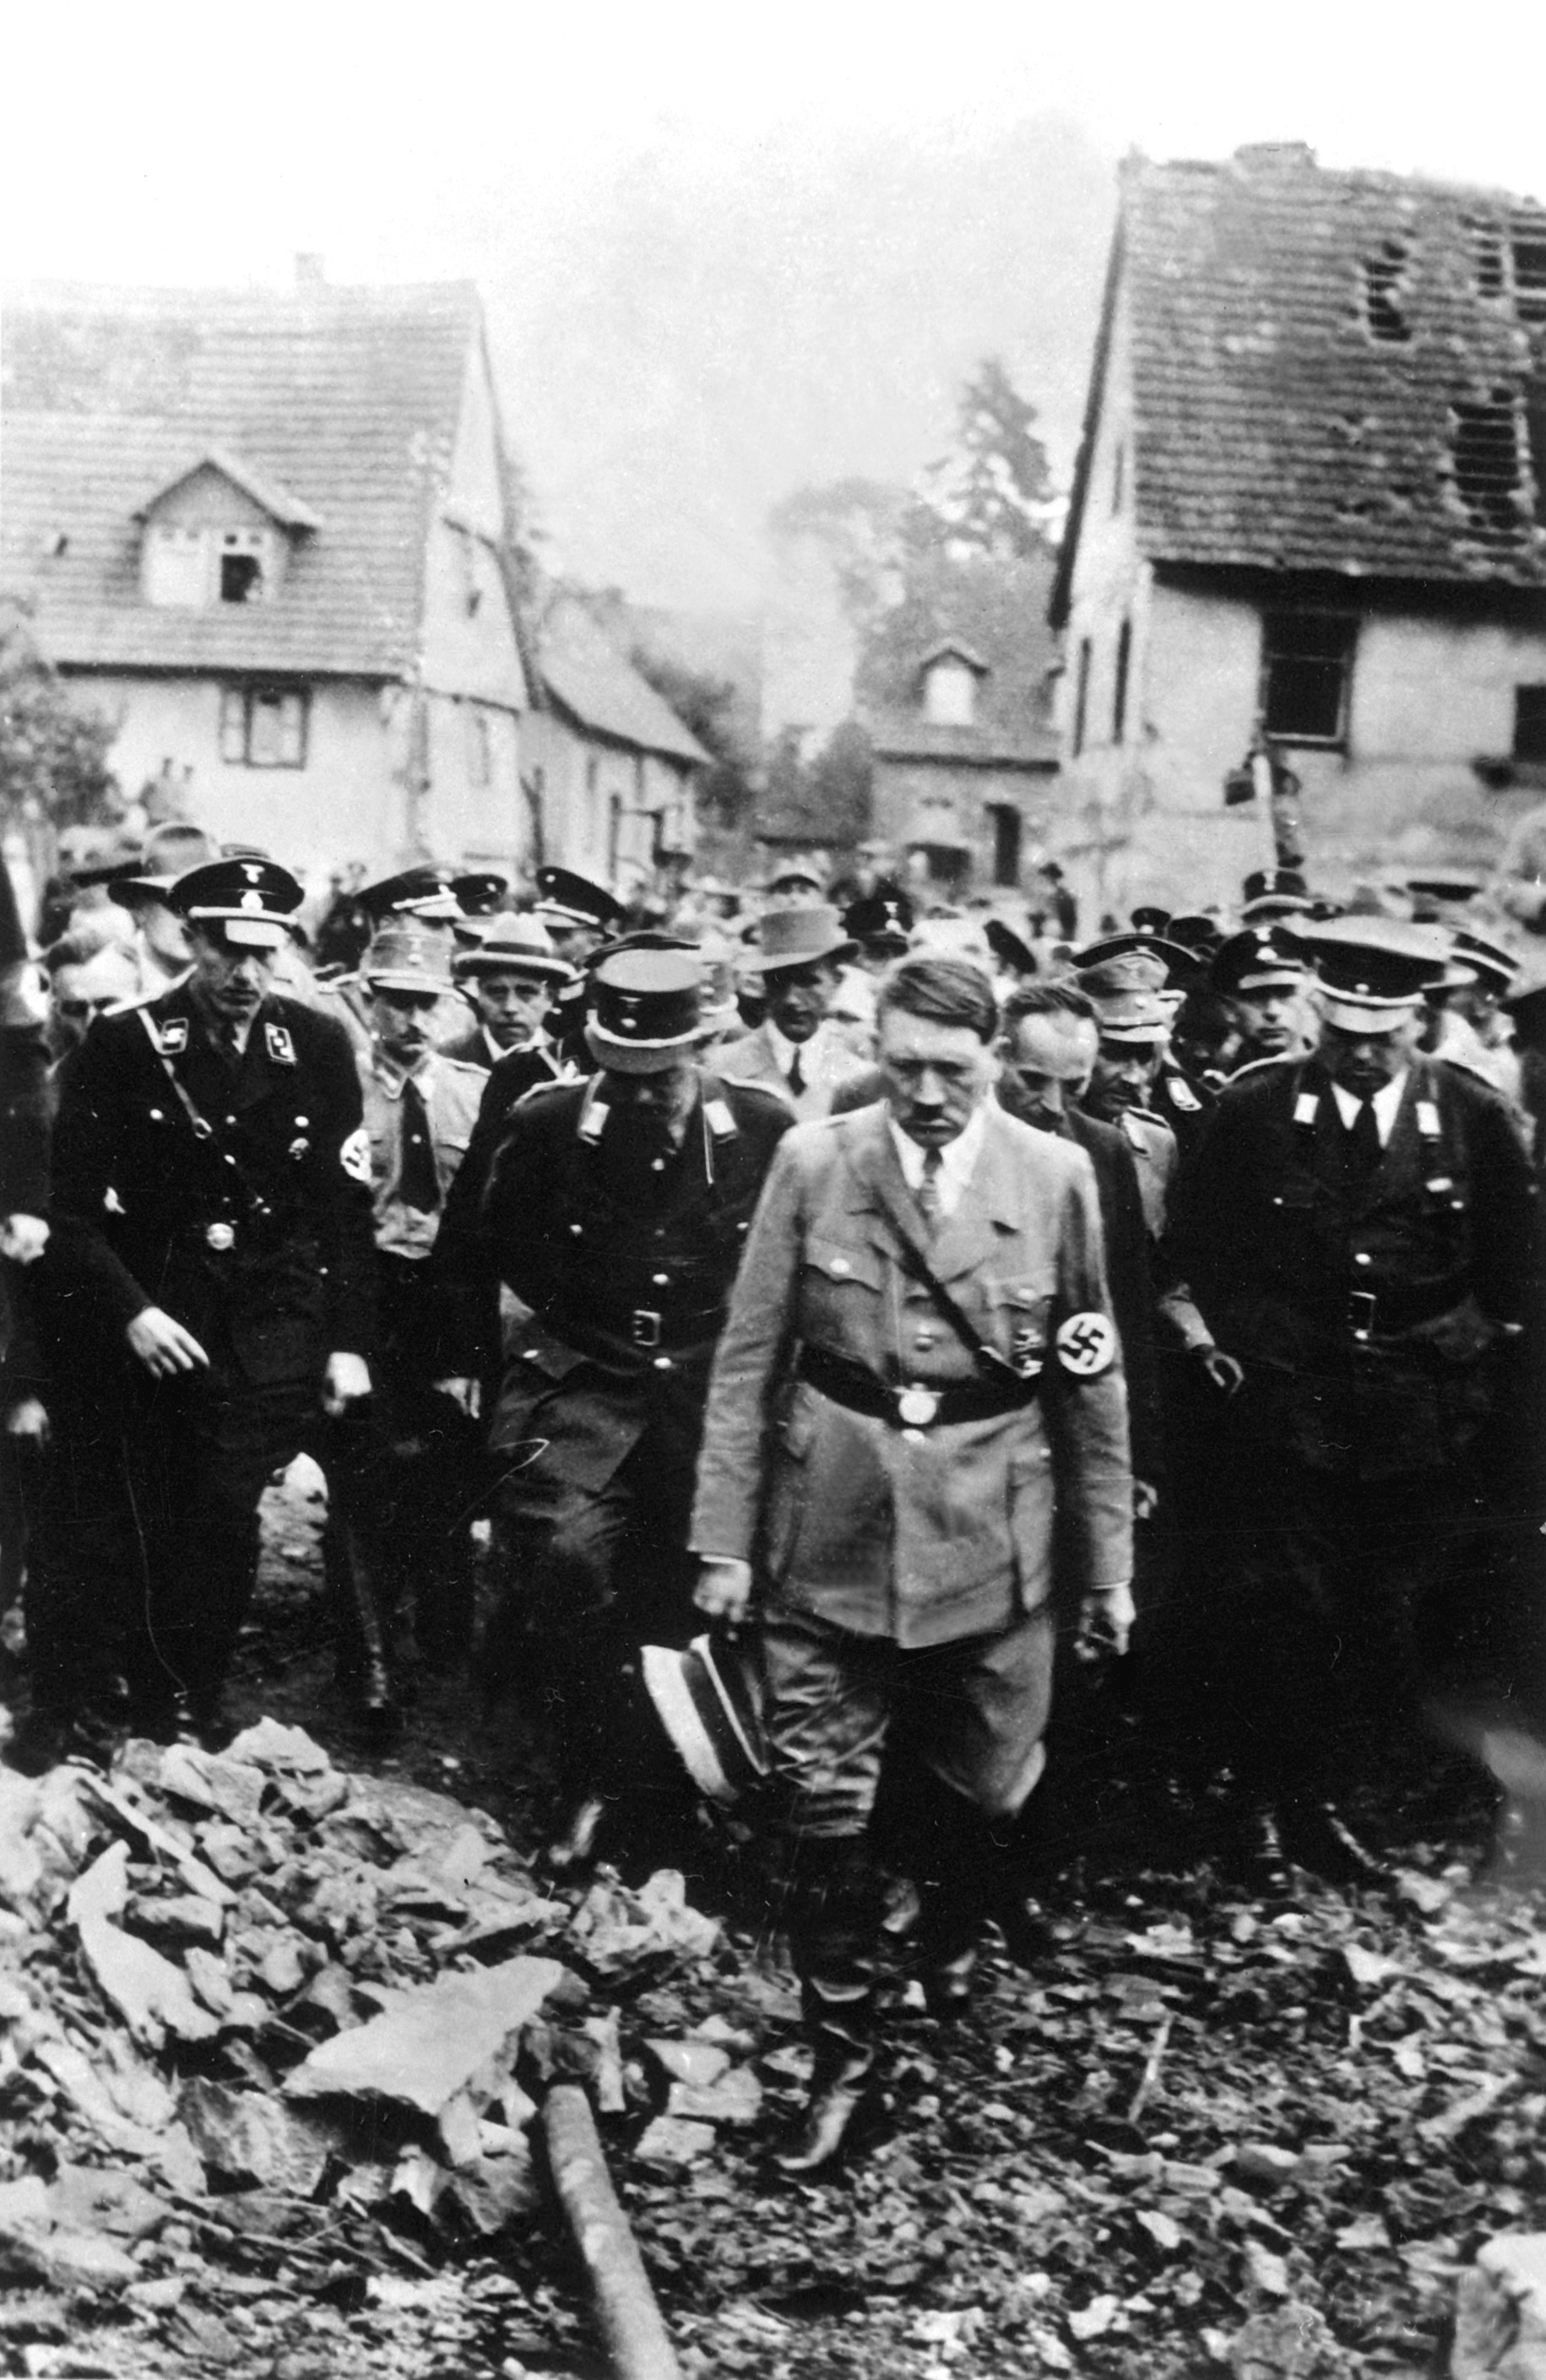 Adolf Hitler visits Oeschelbronn, Württemberg after a munitions plant explosion which destroyed 203 homes